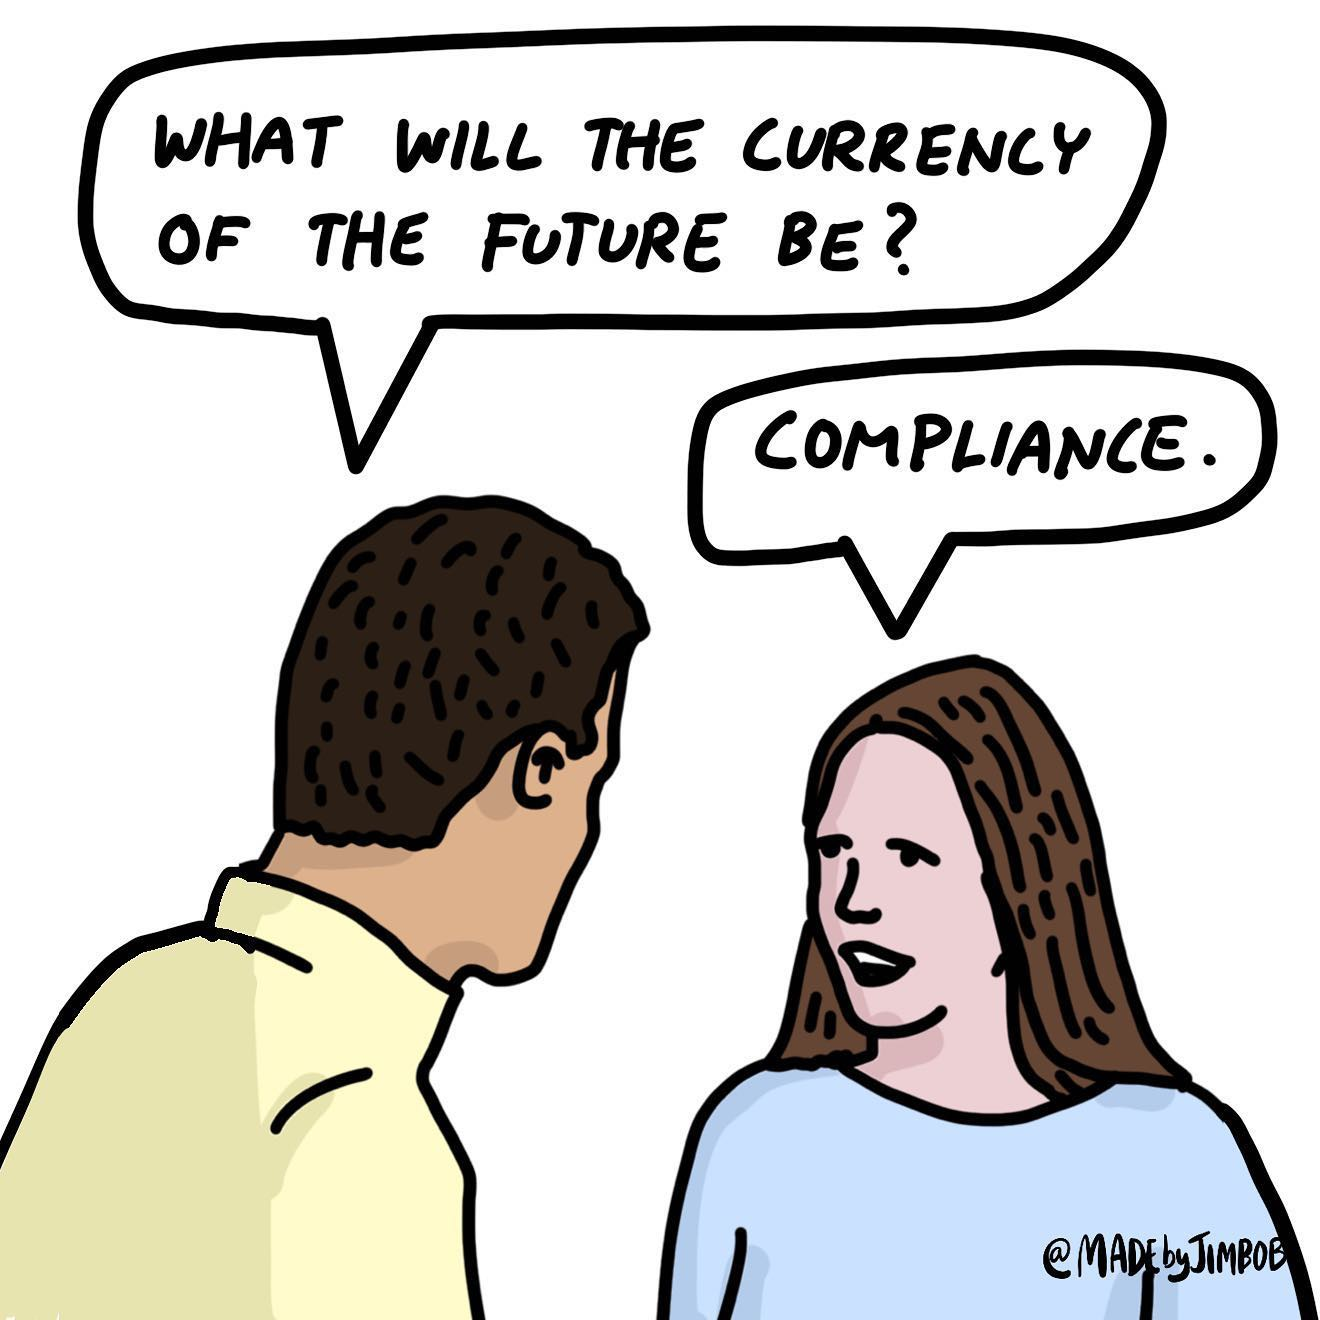 The Currency of the Future